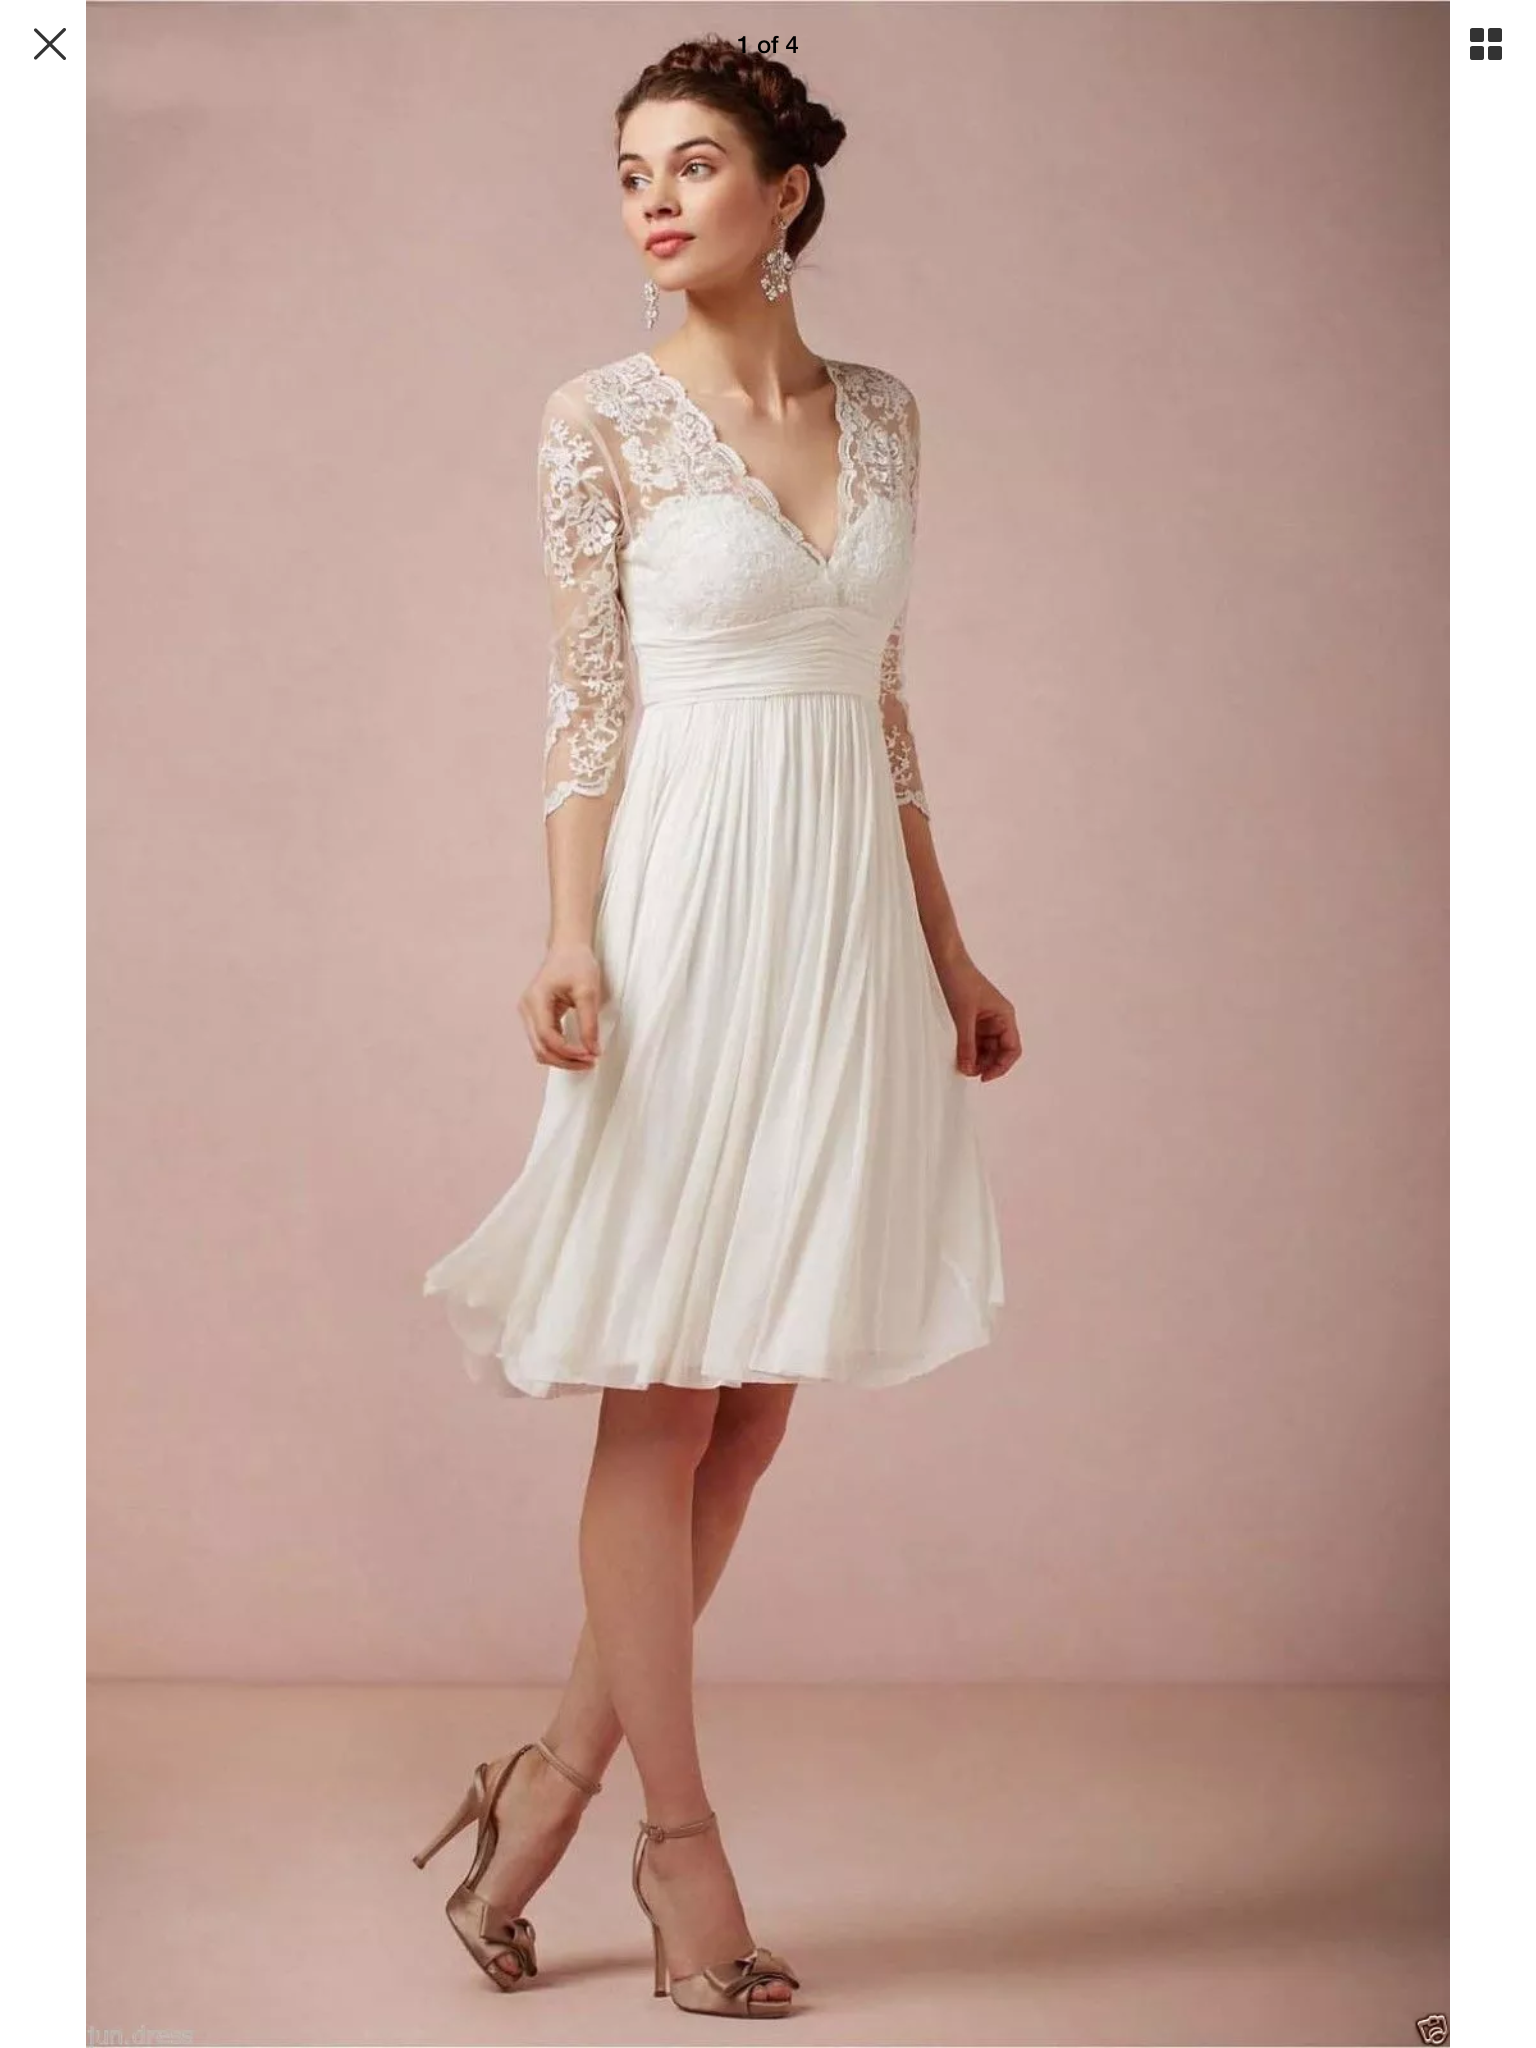 Outdoor summer wedding dresses  Pin by Lisa Neville on DressesGowns  Pinterest  Wedding dresses